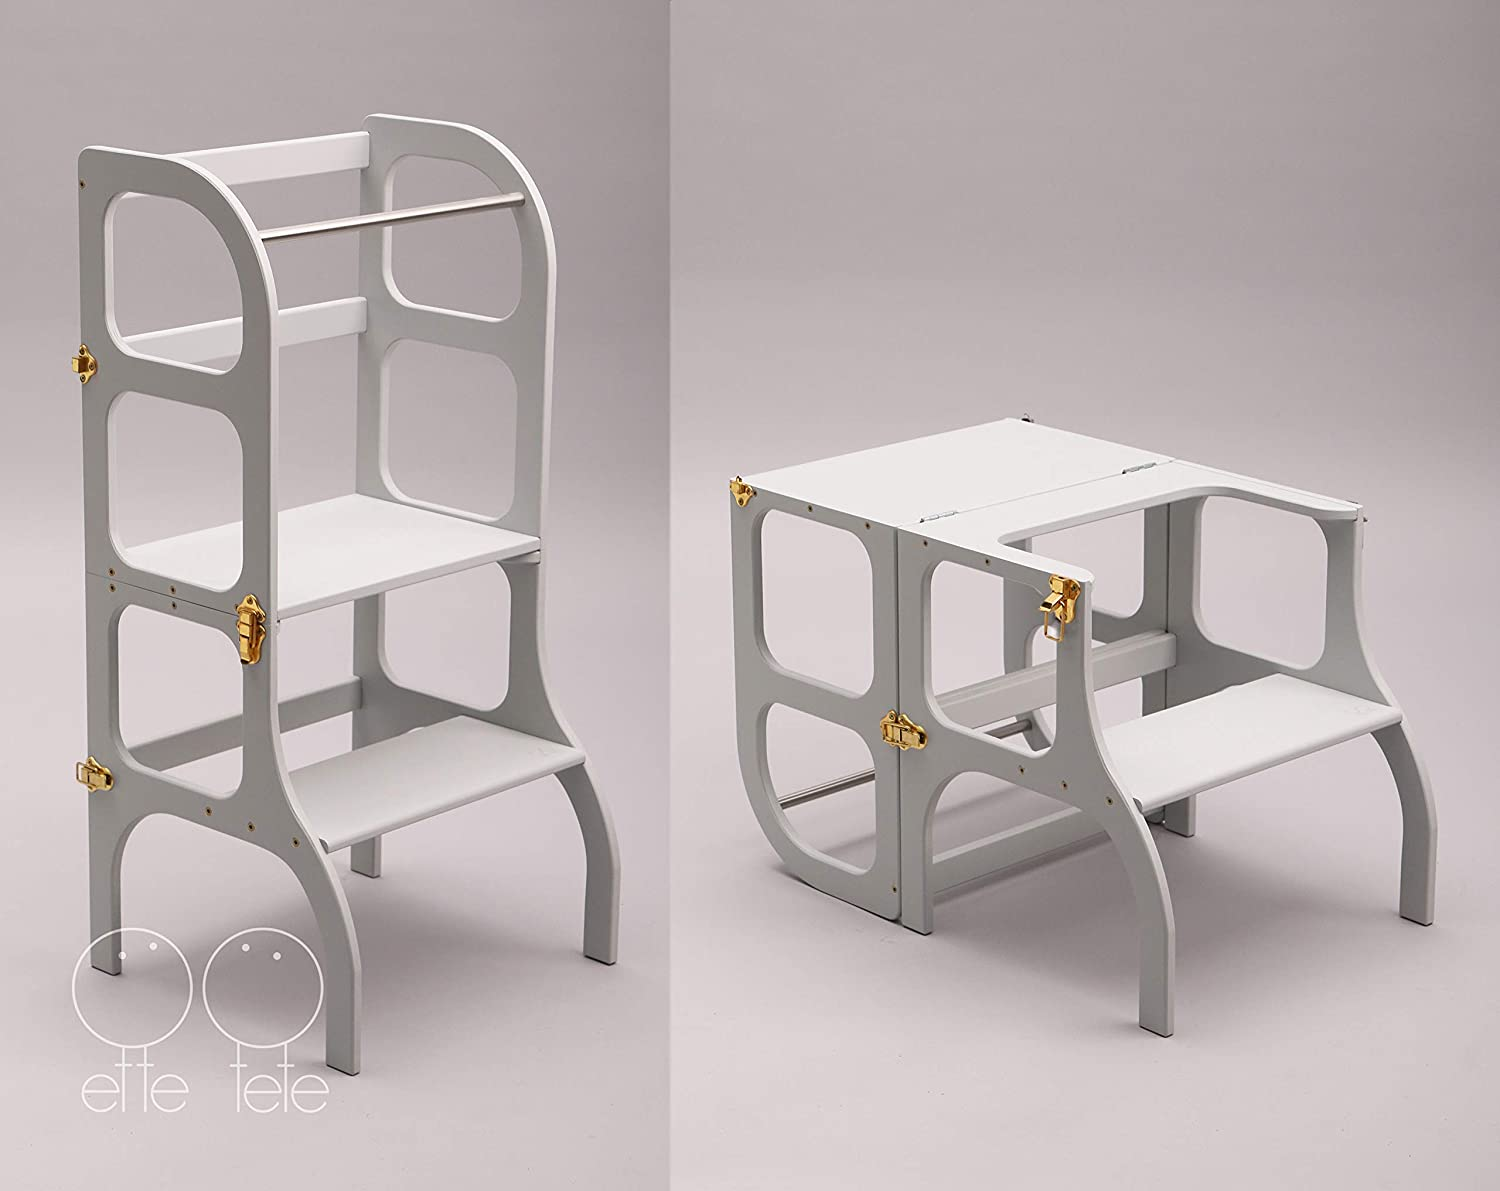 Convertible Helper tower - table/chair Step'n'Sit all-in-one, Montessori learning stool, kitchen step stool - GRAY color/GOLD clasps